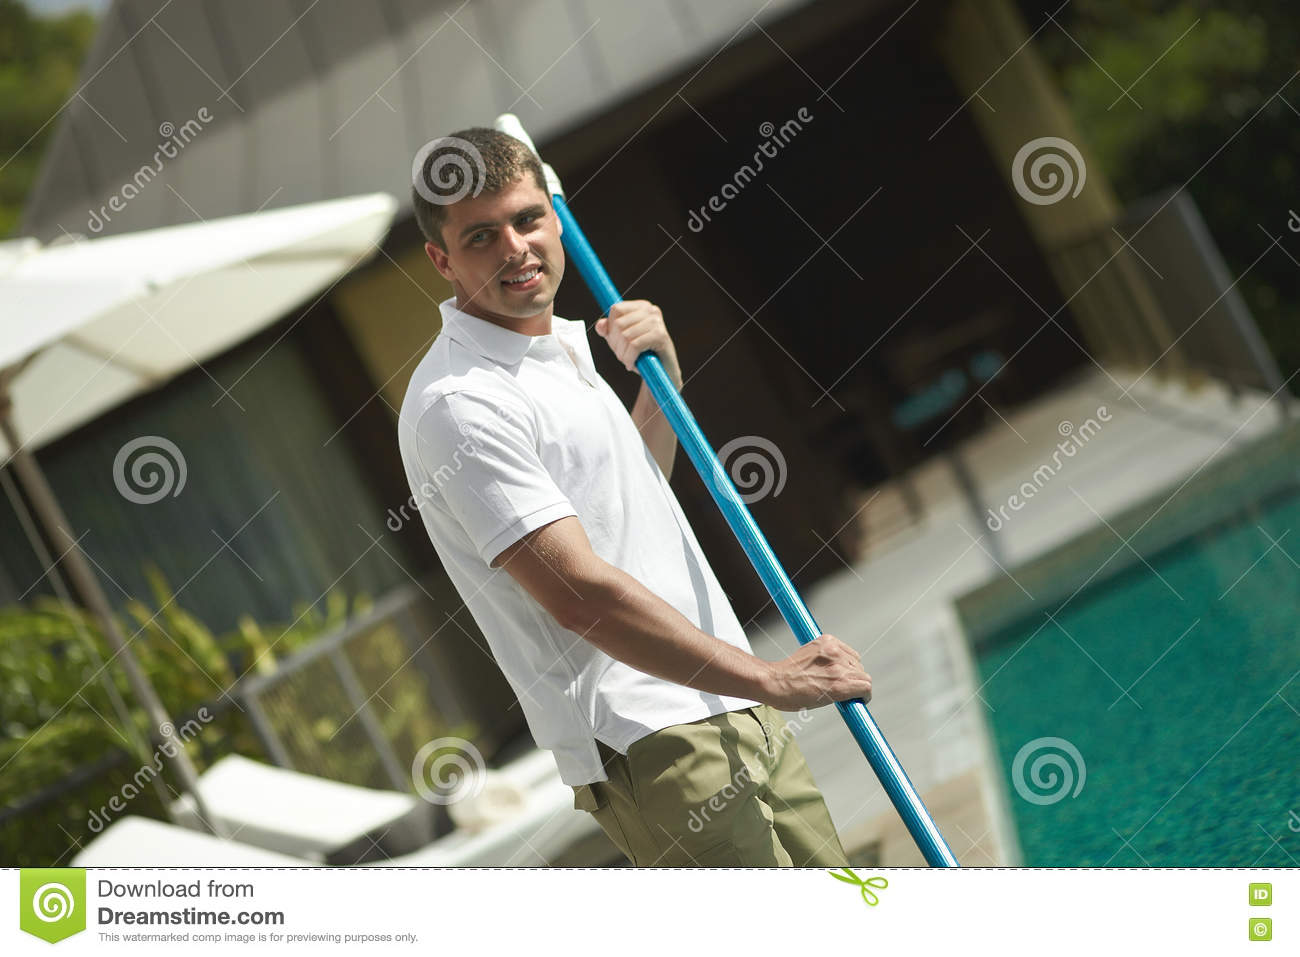 Swimming Pool Service Worker : Swimming pool cleaner professional cleaning service at